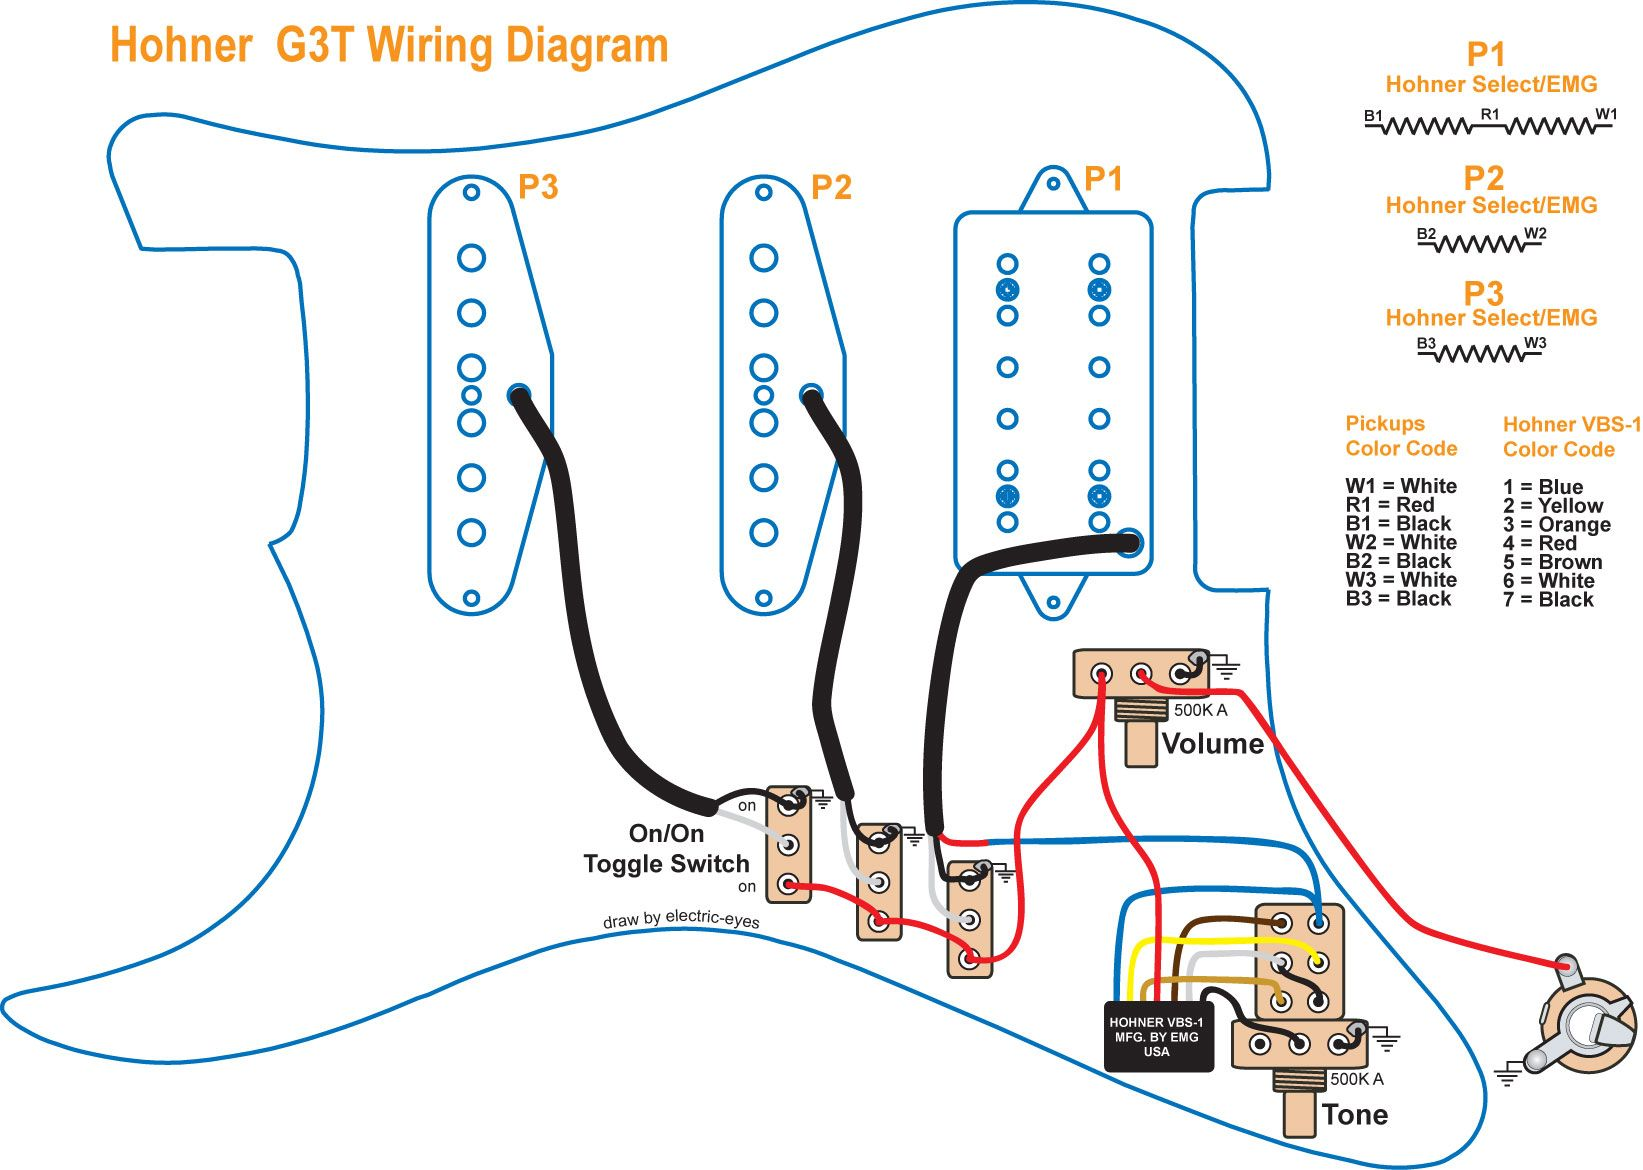 30d63d30731acd837b42877f6b7bc539?resized665%2C4746ssld1 guitar pickup wiring diagram efcaviation com dragonfire wiring diagram at reclaimingppi.co